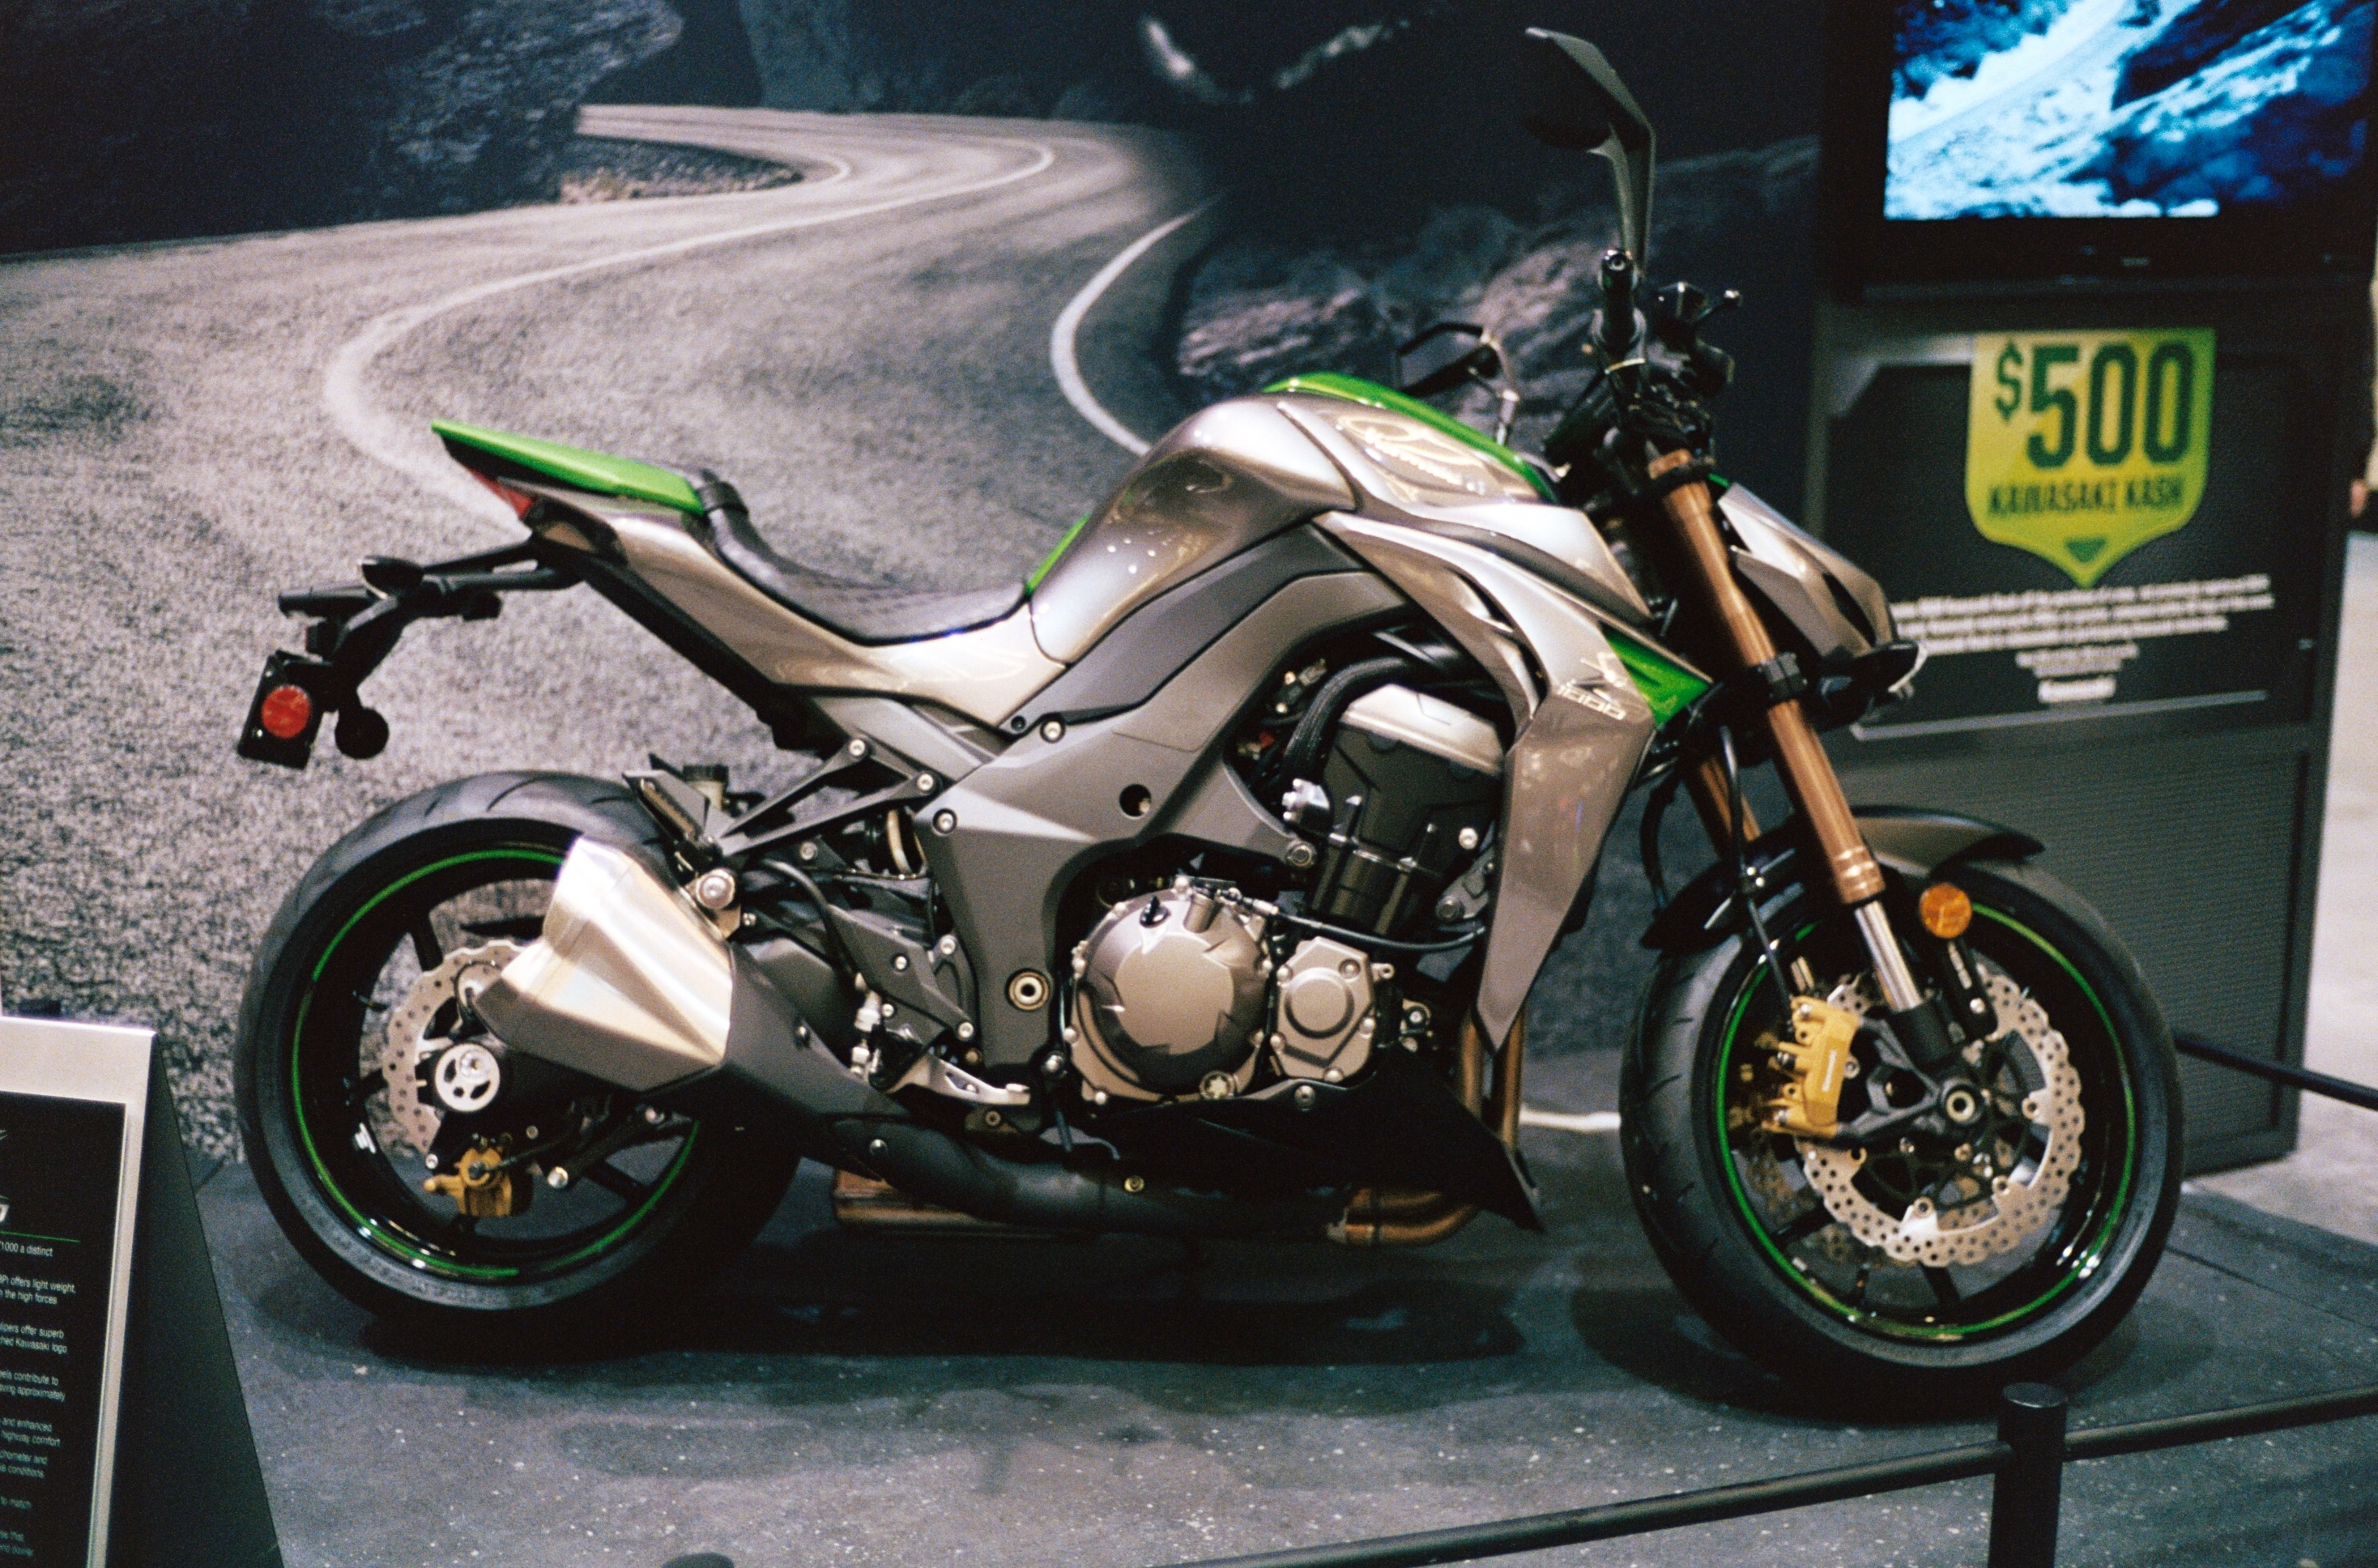 File:2014 Kawasaki Z1000.JPG - Wikimedia Commons